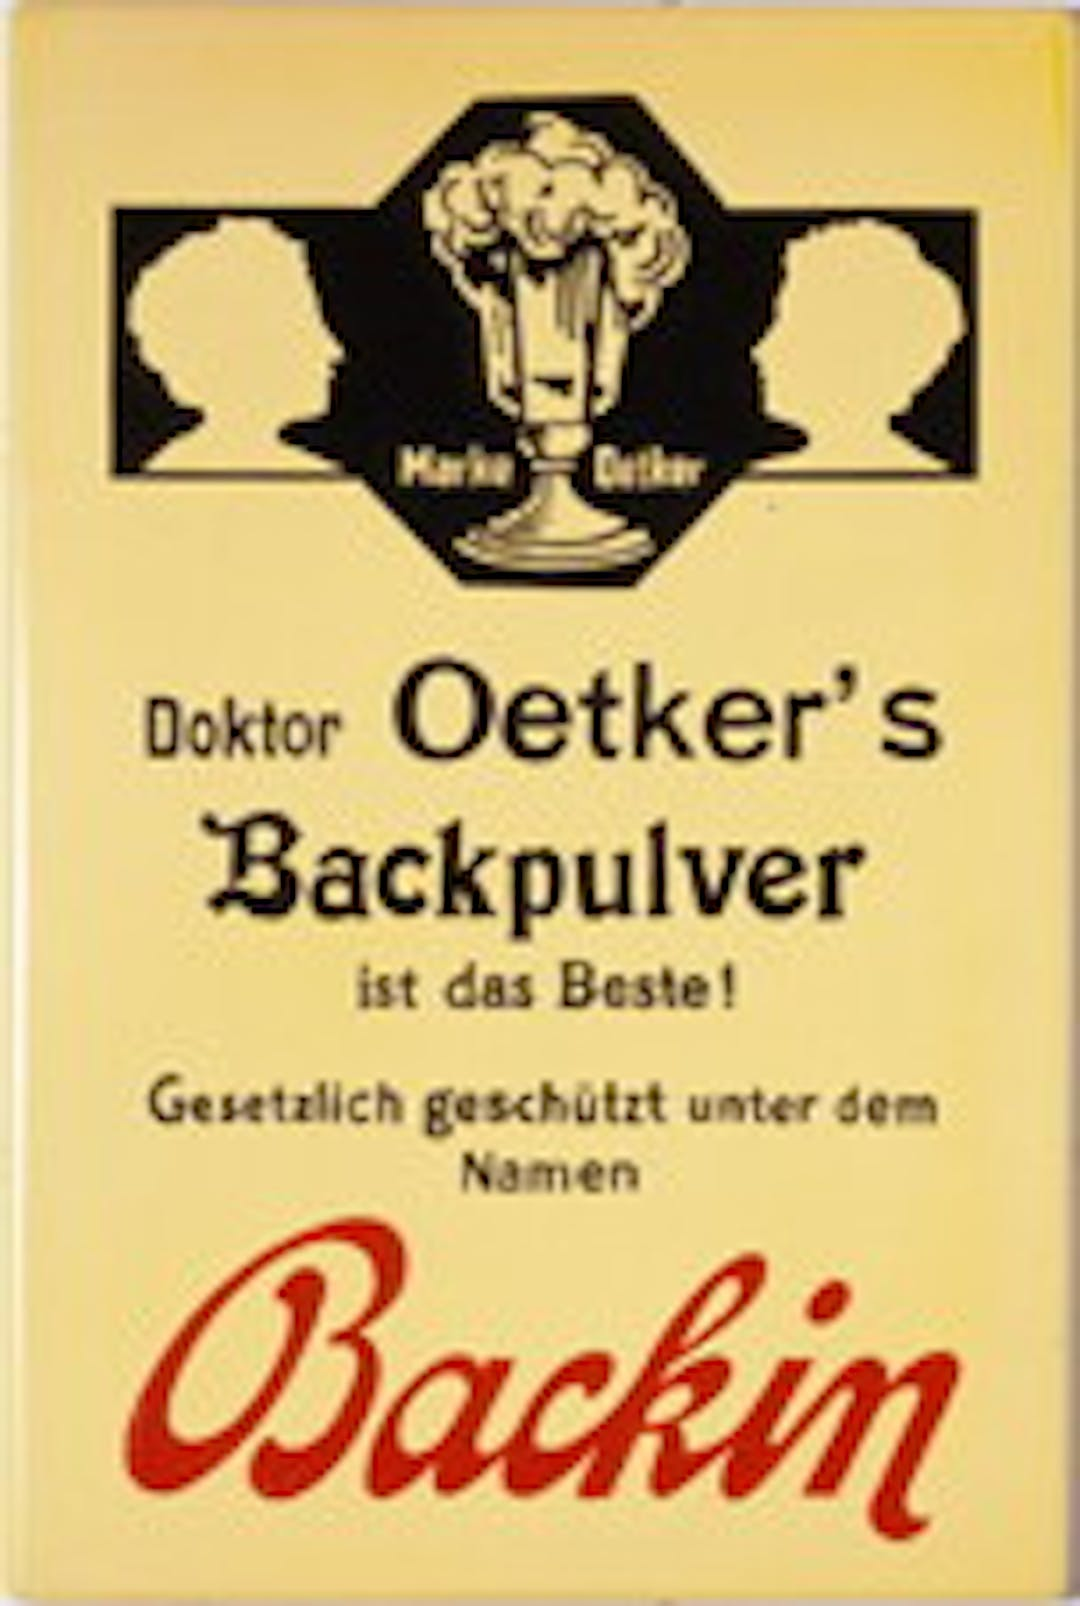 Dr. Oetker's recipe pamphlet